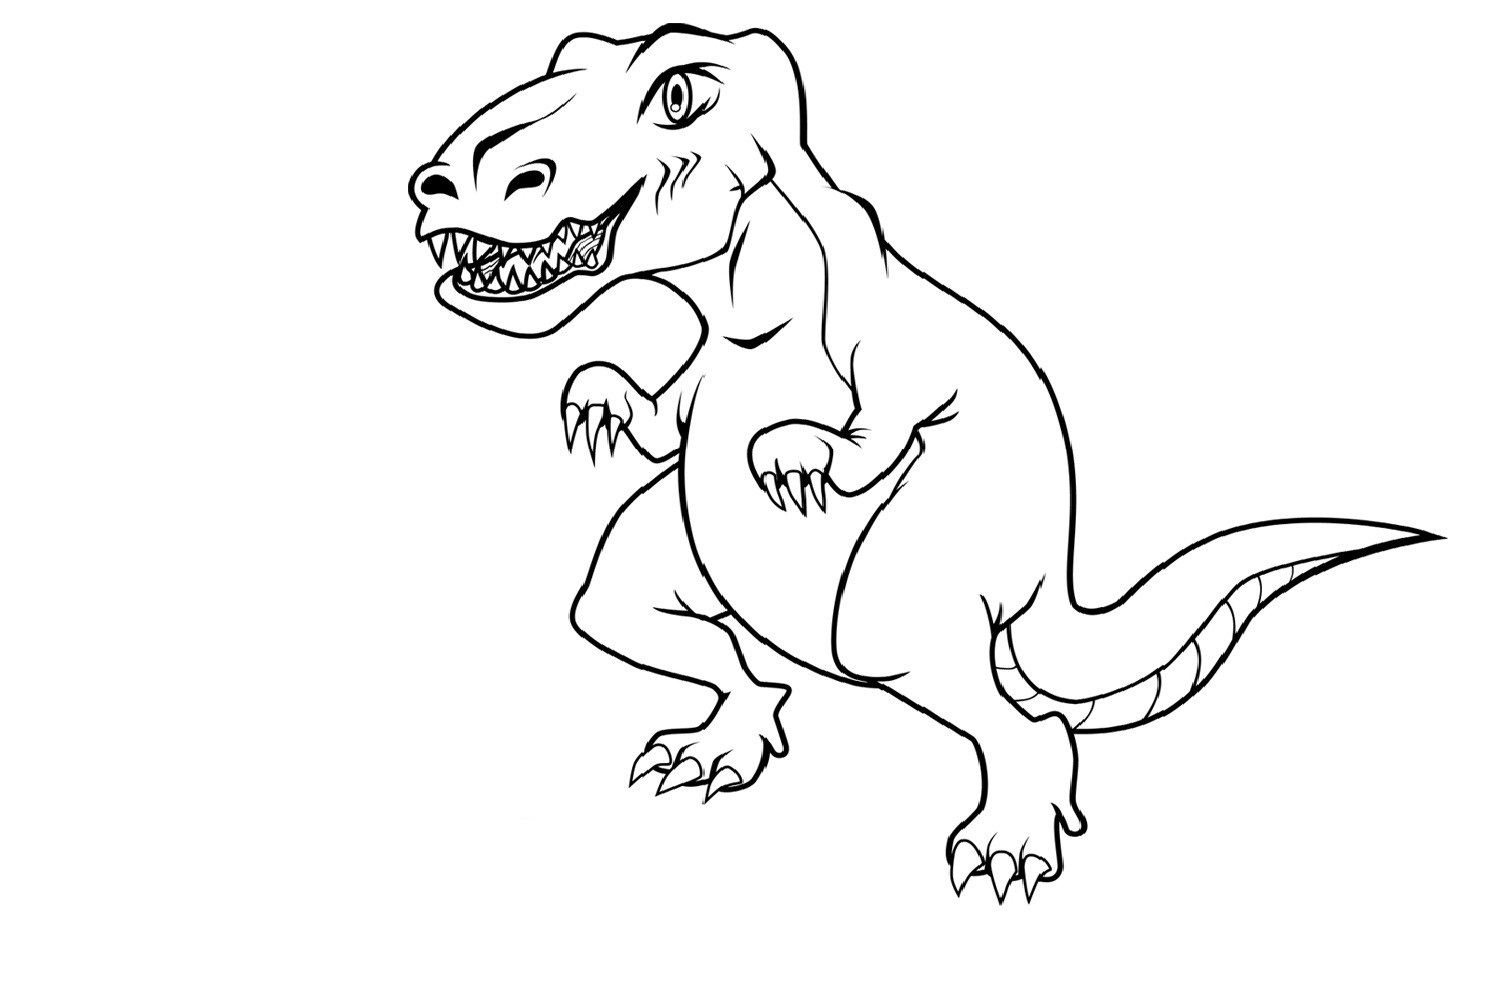 Printable coloring pages dinosaurs - Free Printable Dinosaur Coloring Pages